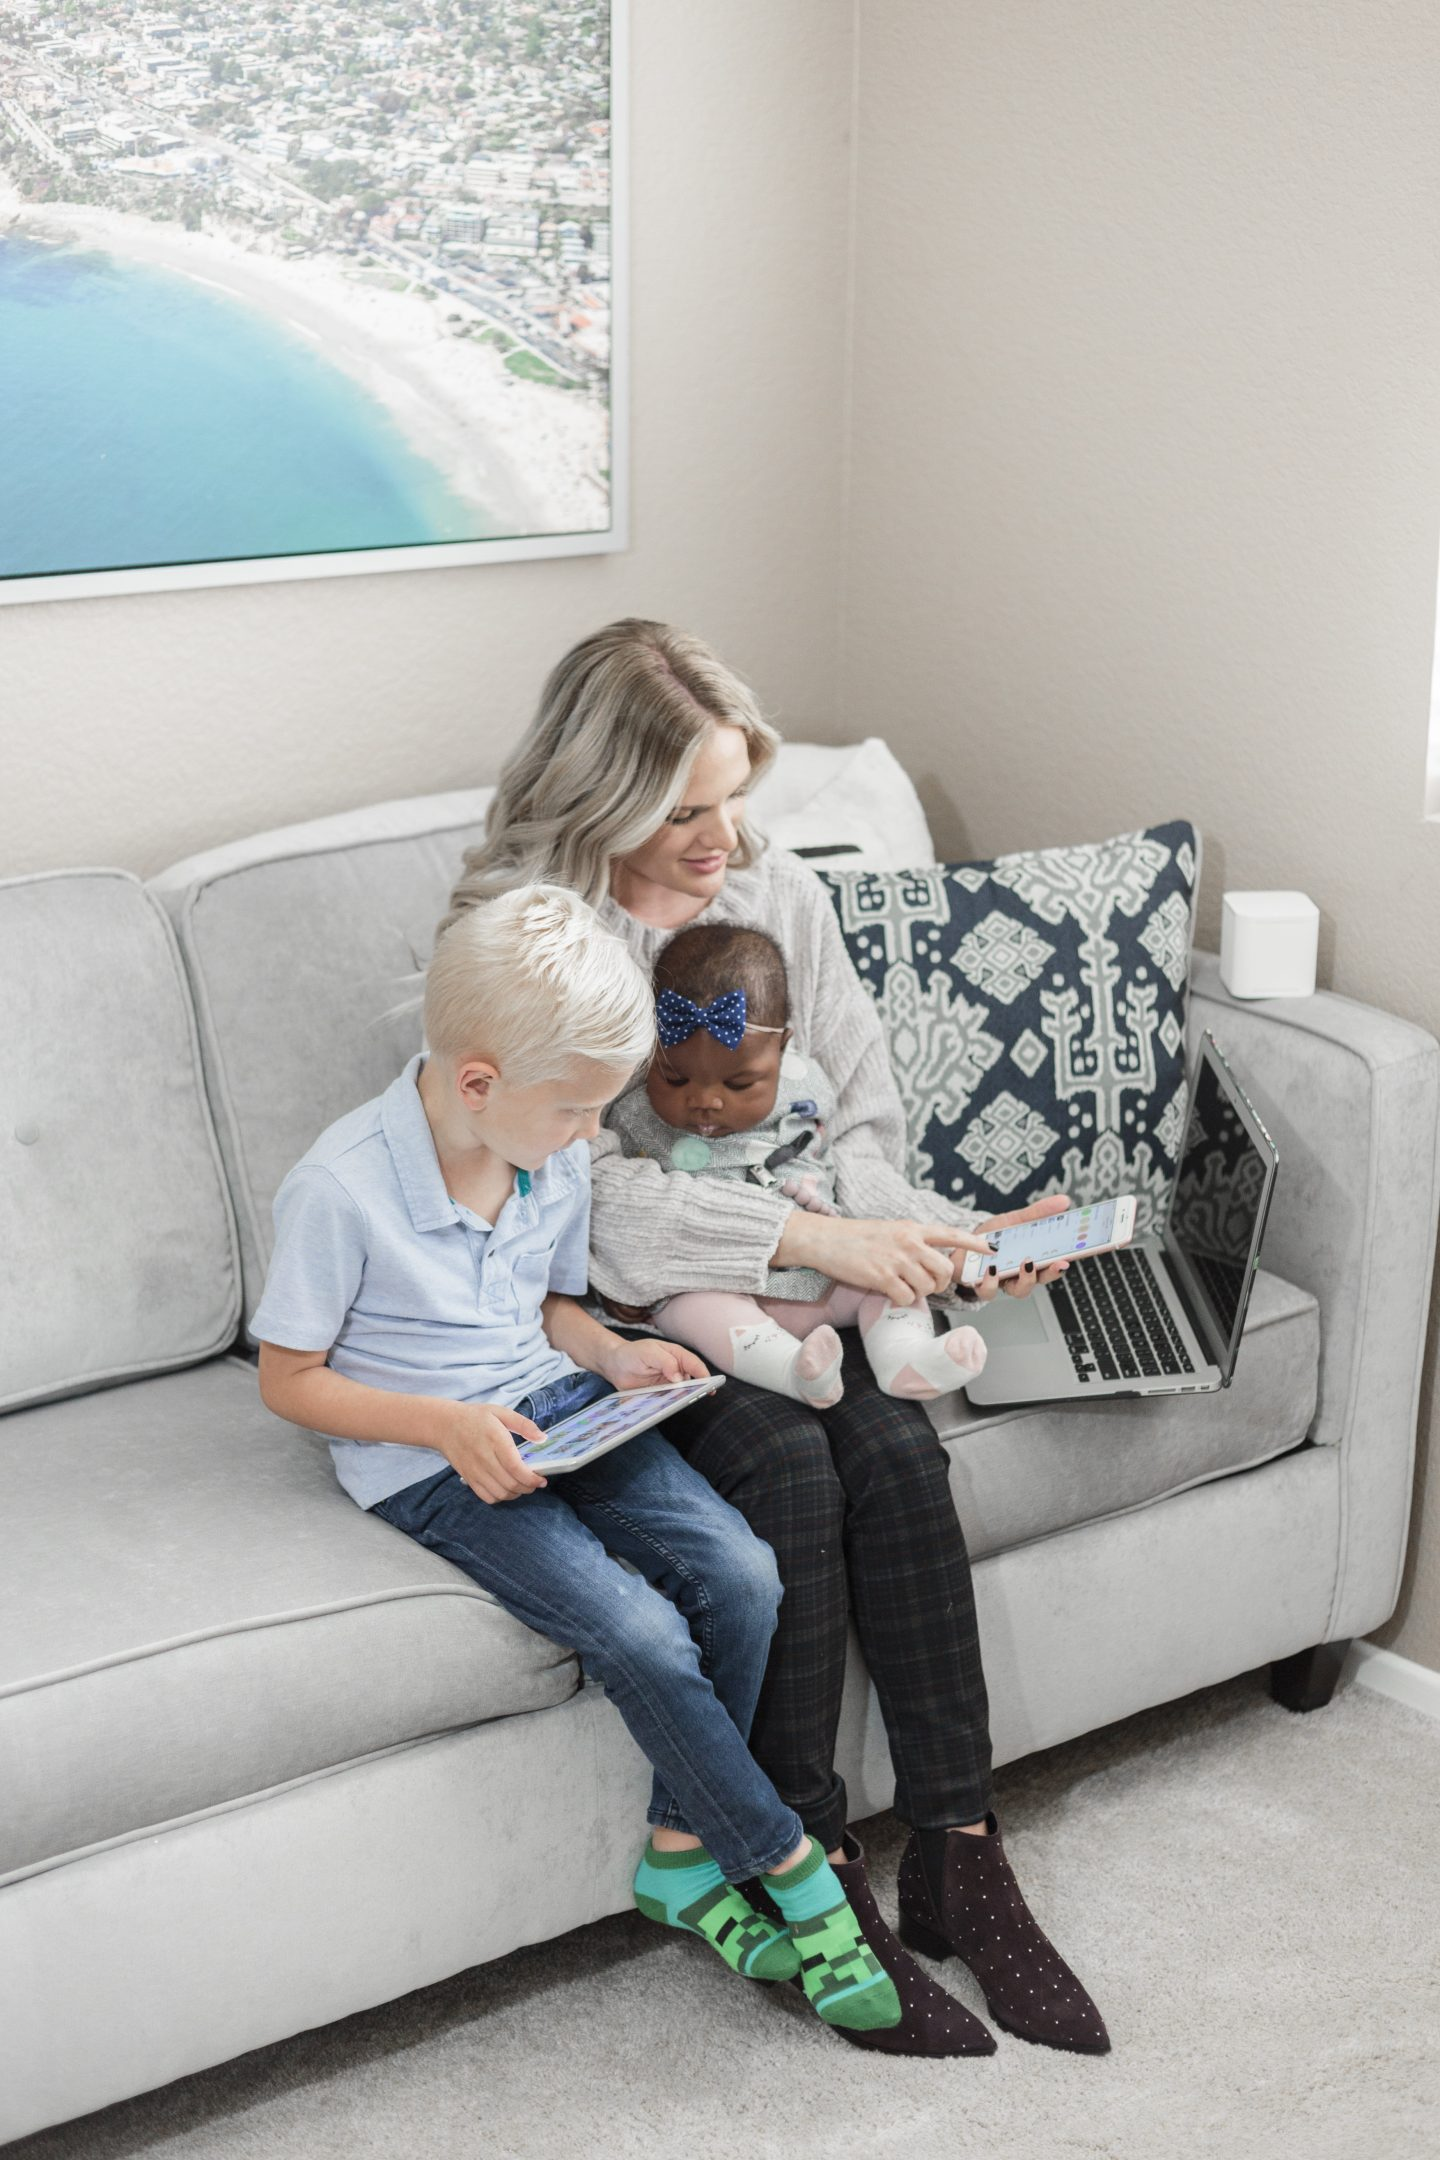 circle with disney review featured by top Orange County life and style blog, Dress Me Blonde: image of a woman holding her baby and watching her son's tablet